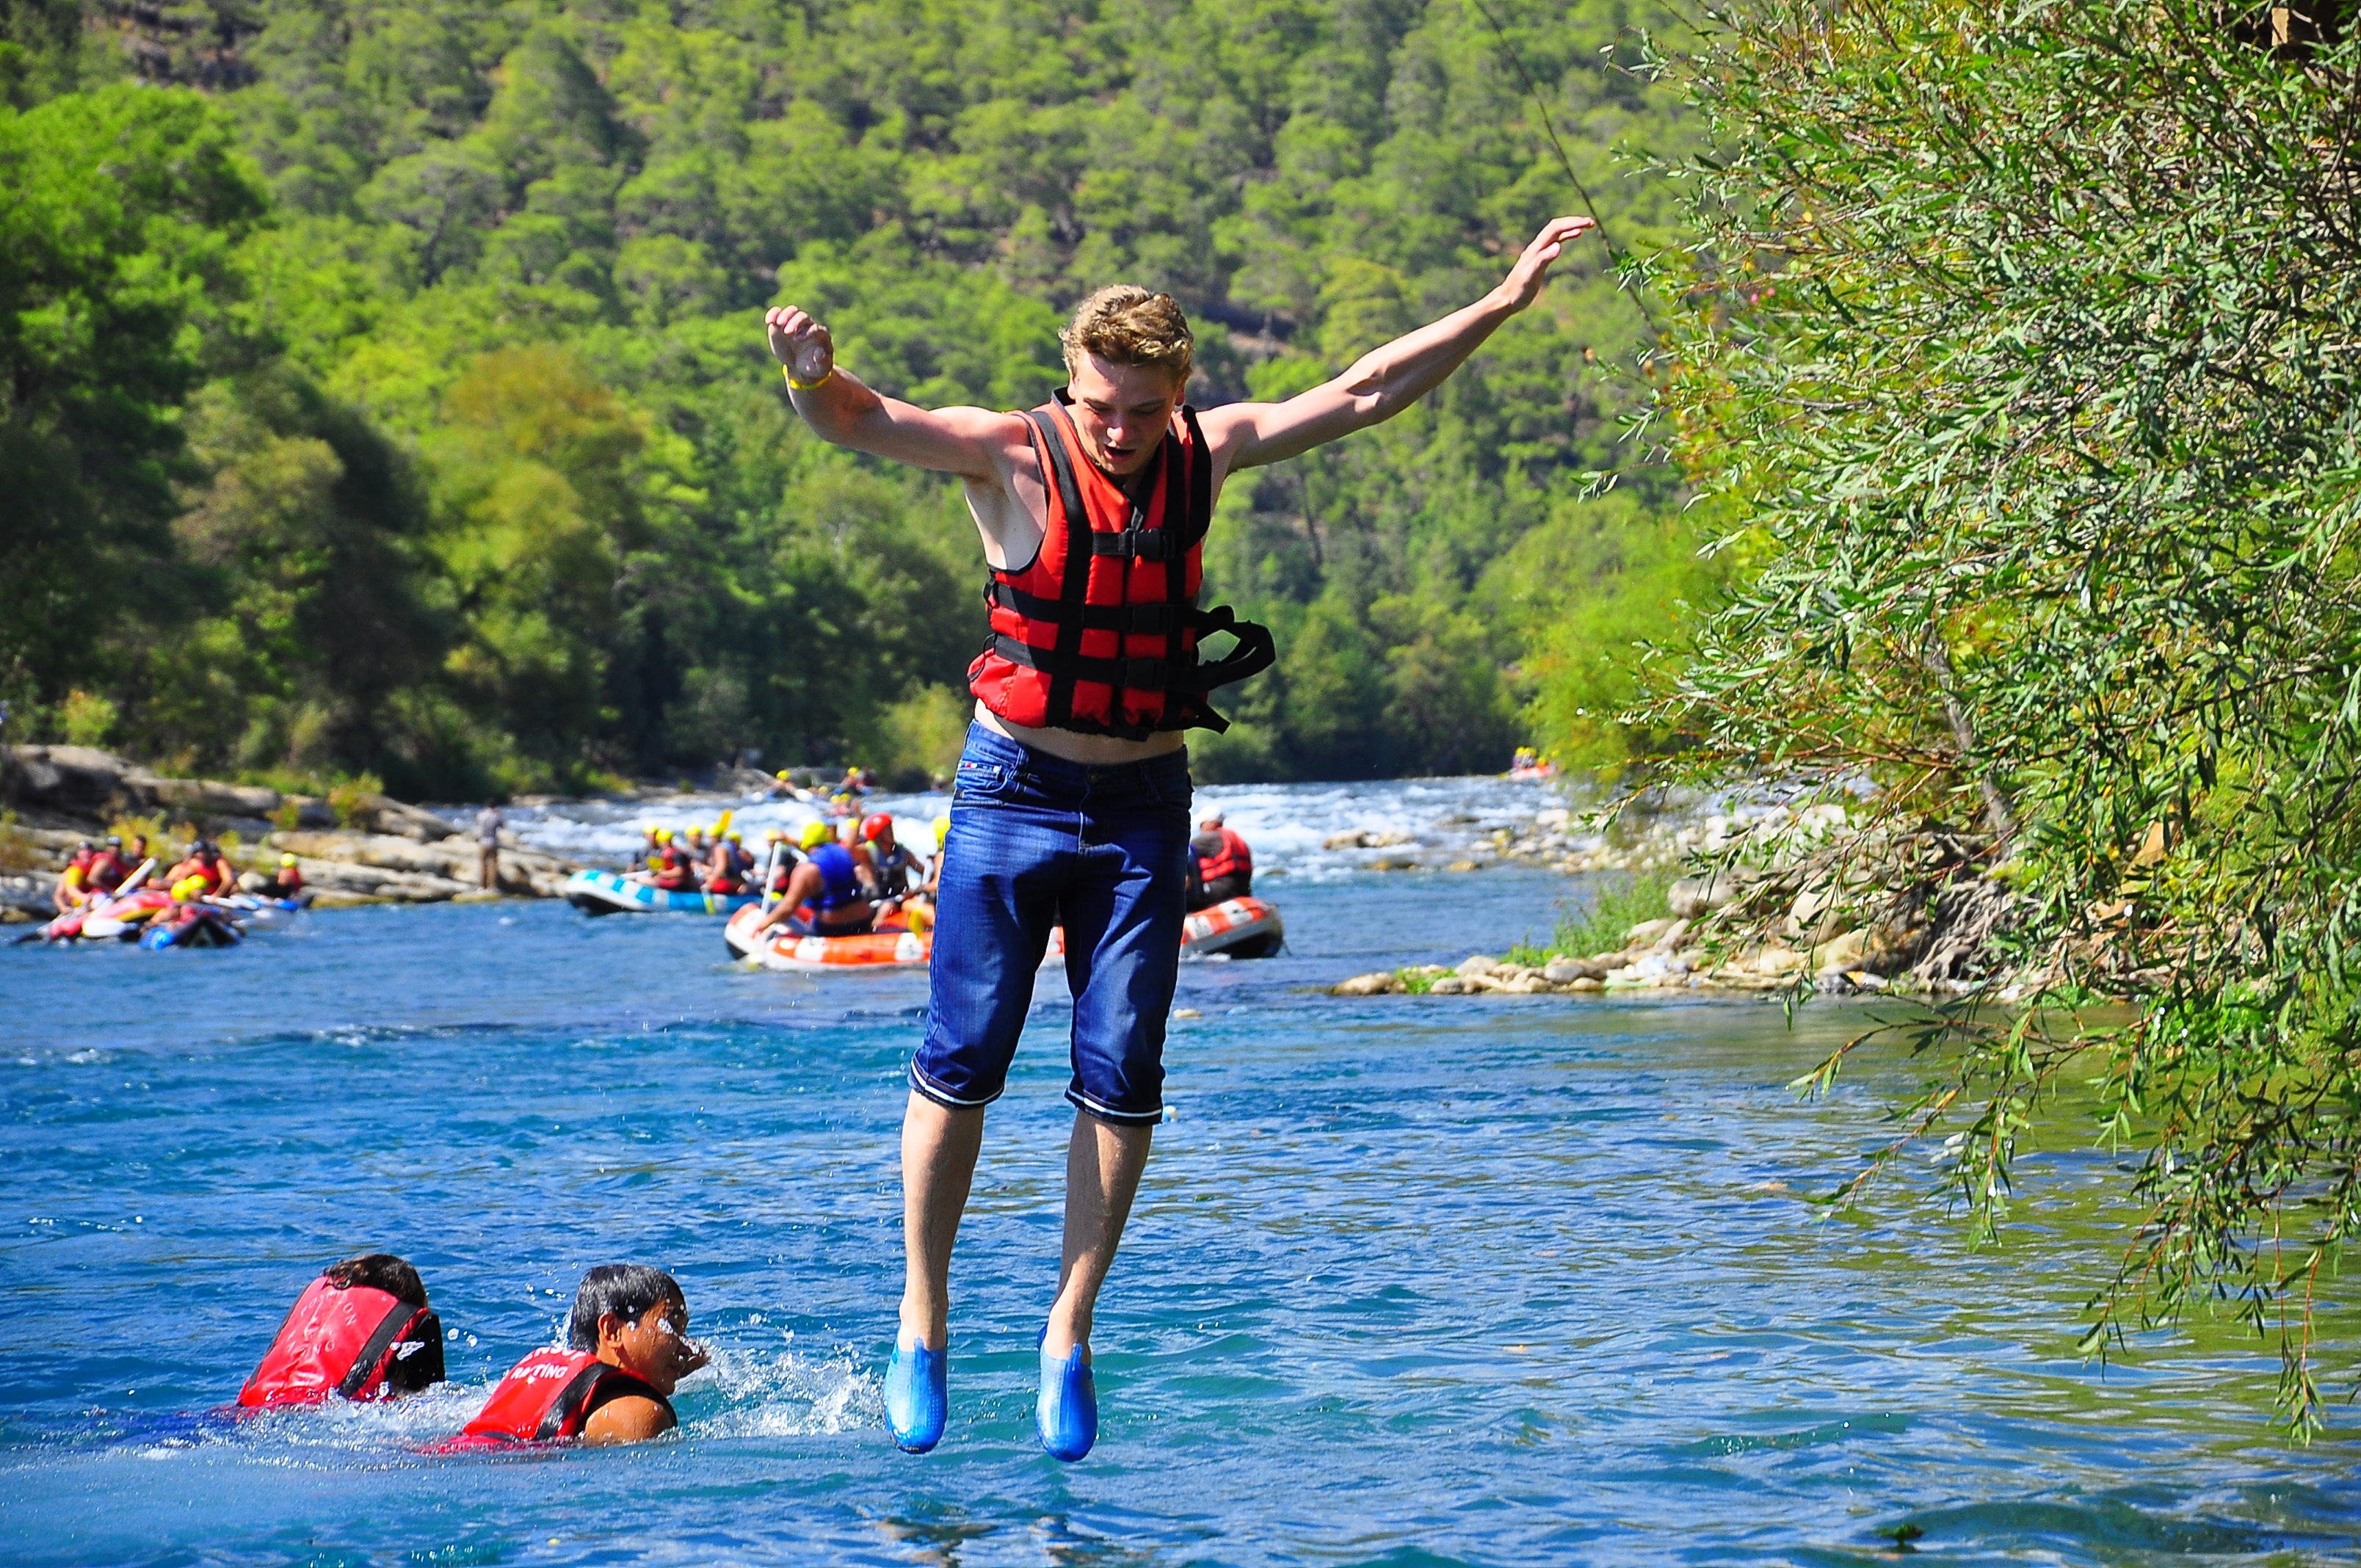 Antalya koprulu canyon rafting tour